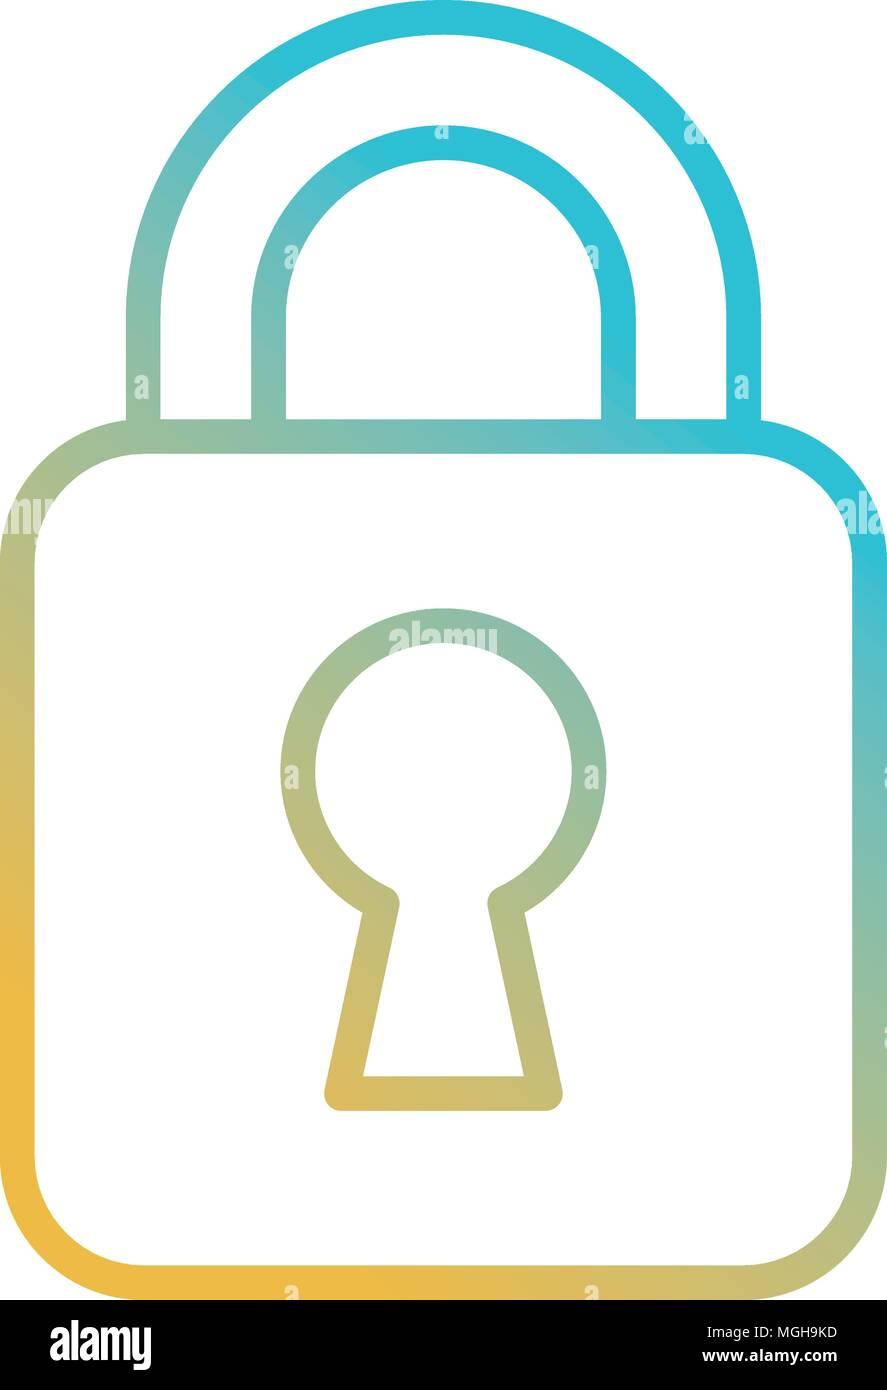 safe secure padlock icon - Stock Image